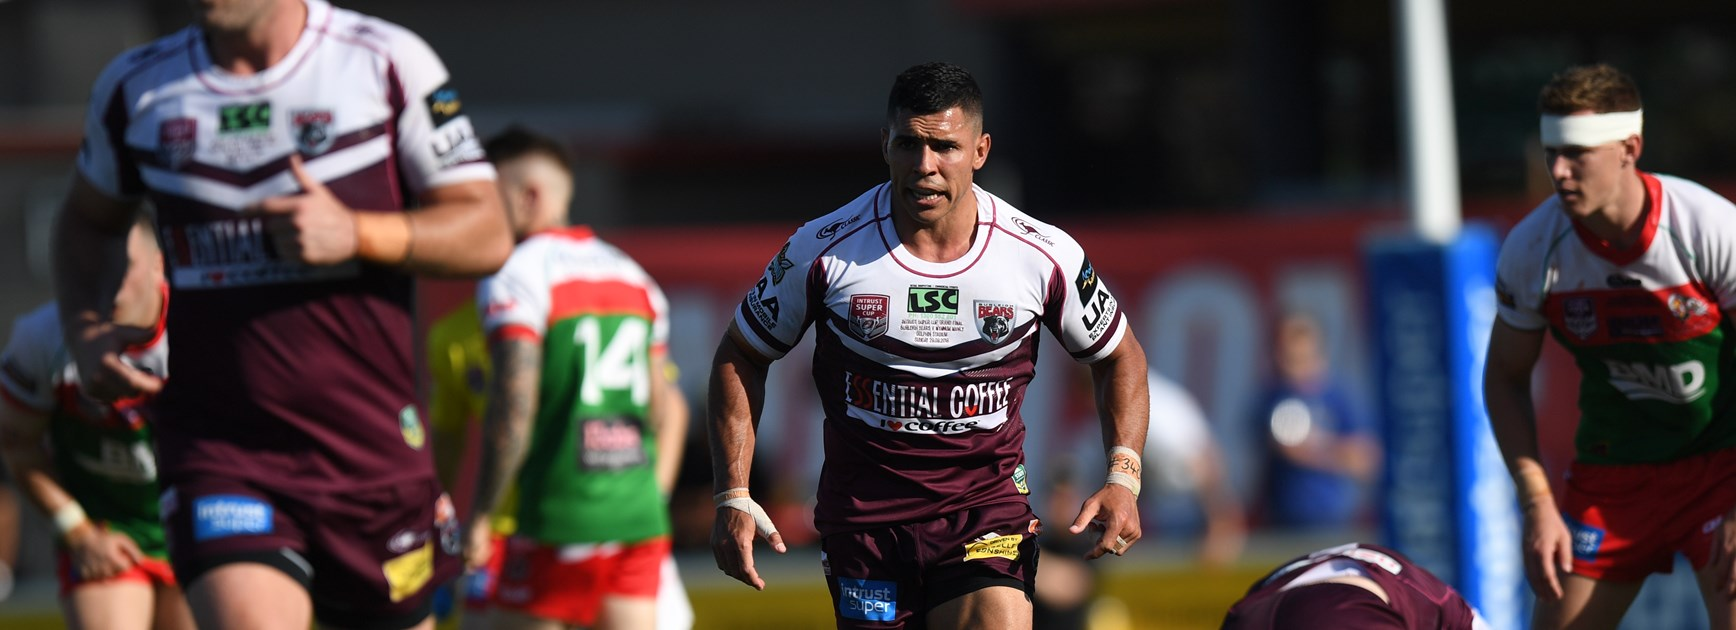 Why Jamal Fogarty deserves to return to NRL now